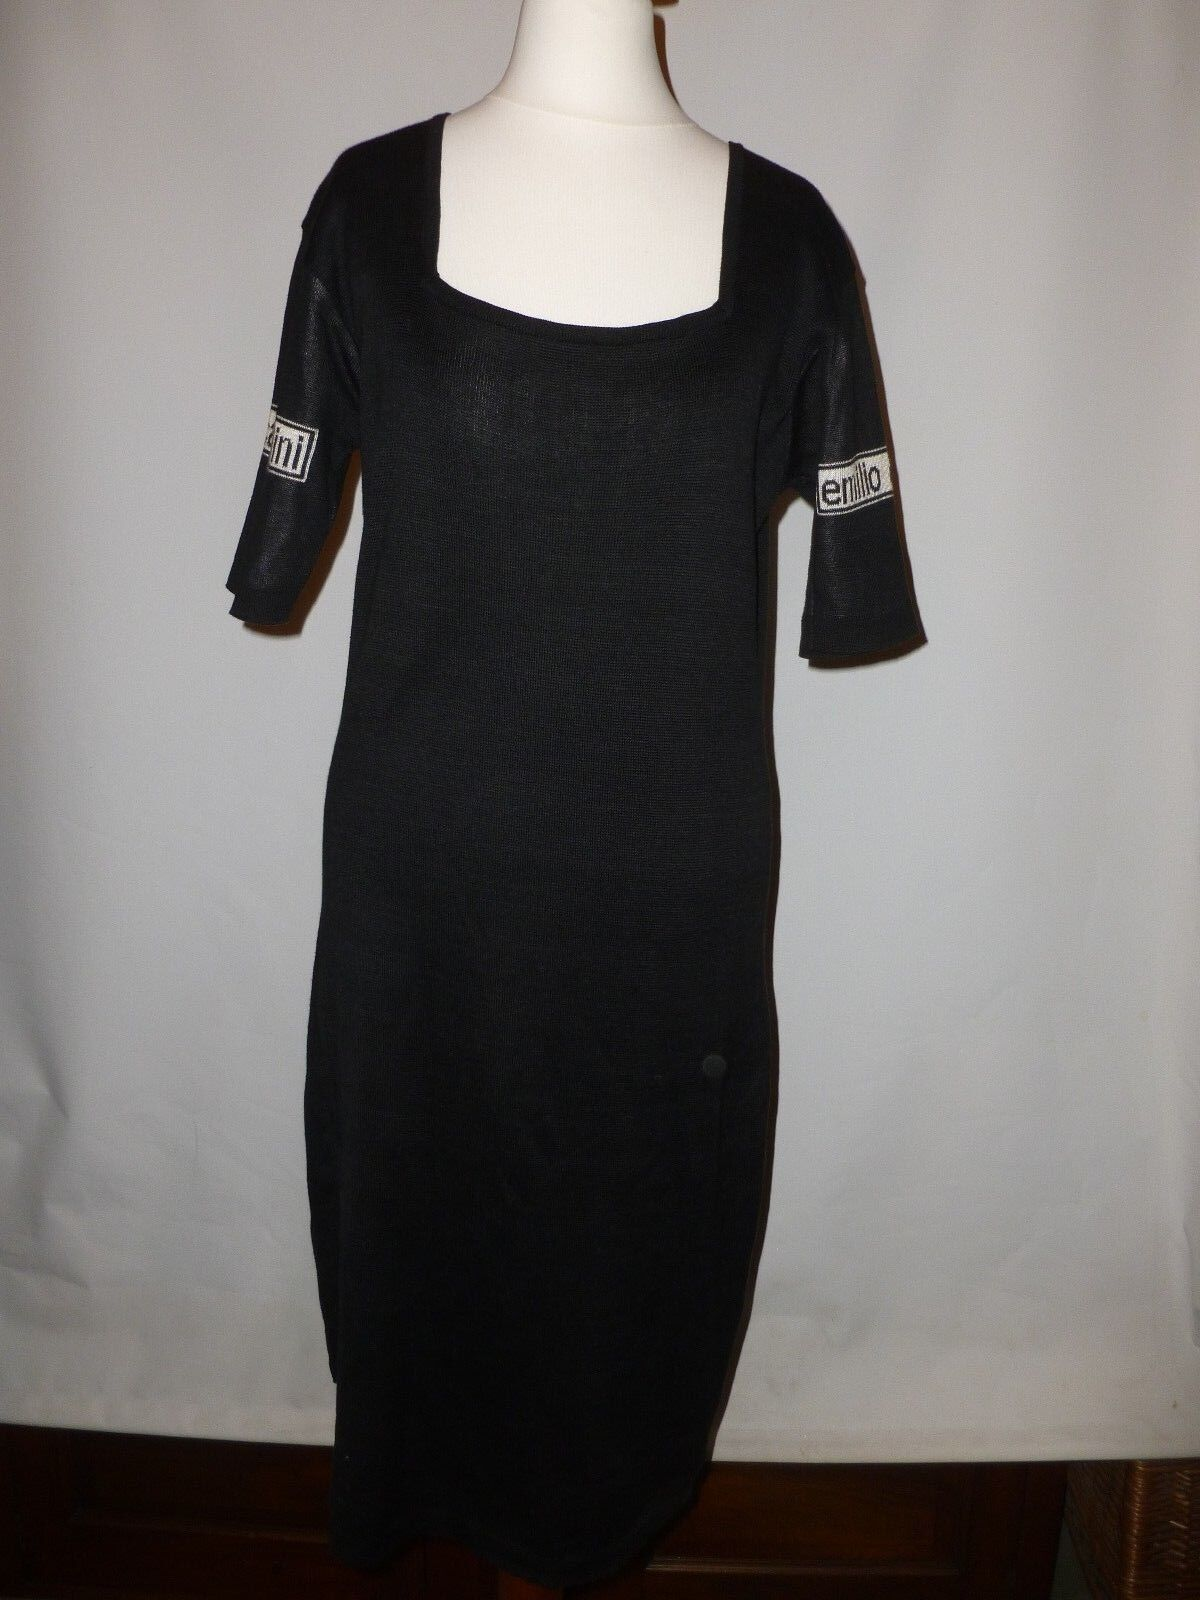 DESIGNER DRESS BY EMILIO CAVALLINI  COTTON KNIT KNIT KNIT - Größe UK 12   MADE IN ITALY 3e4f65